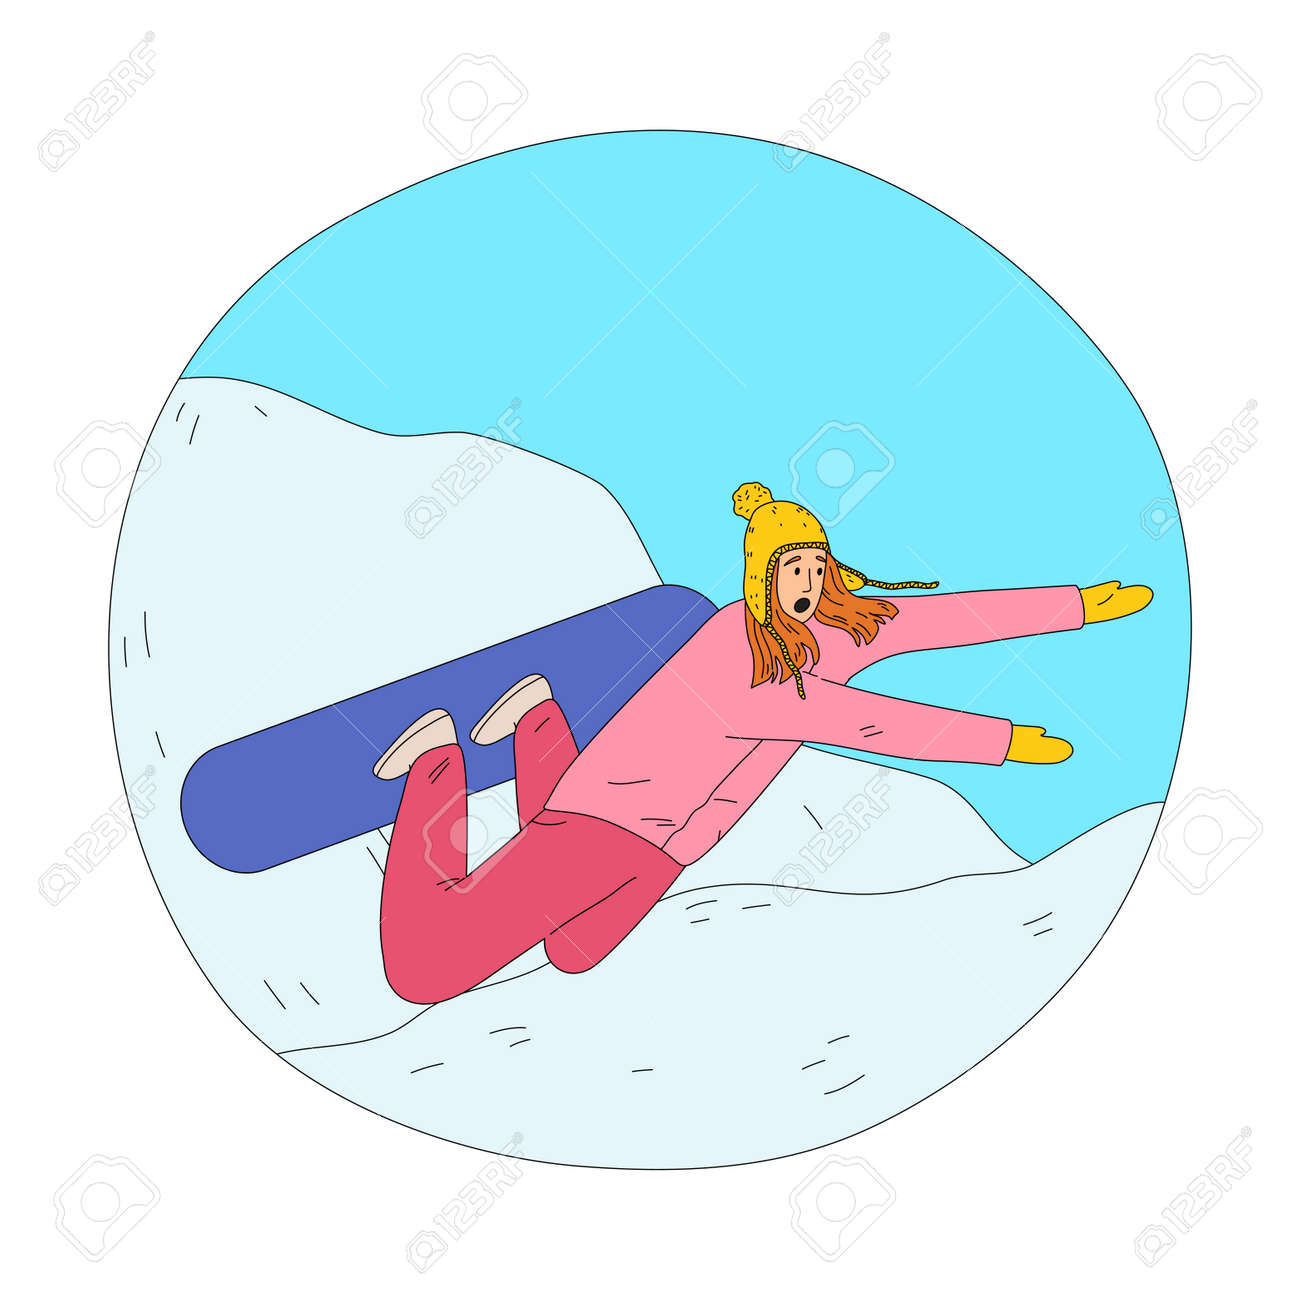 Frustrated woman in pink winter sportswear falling during practicing snowboarding - 162070070